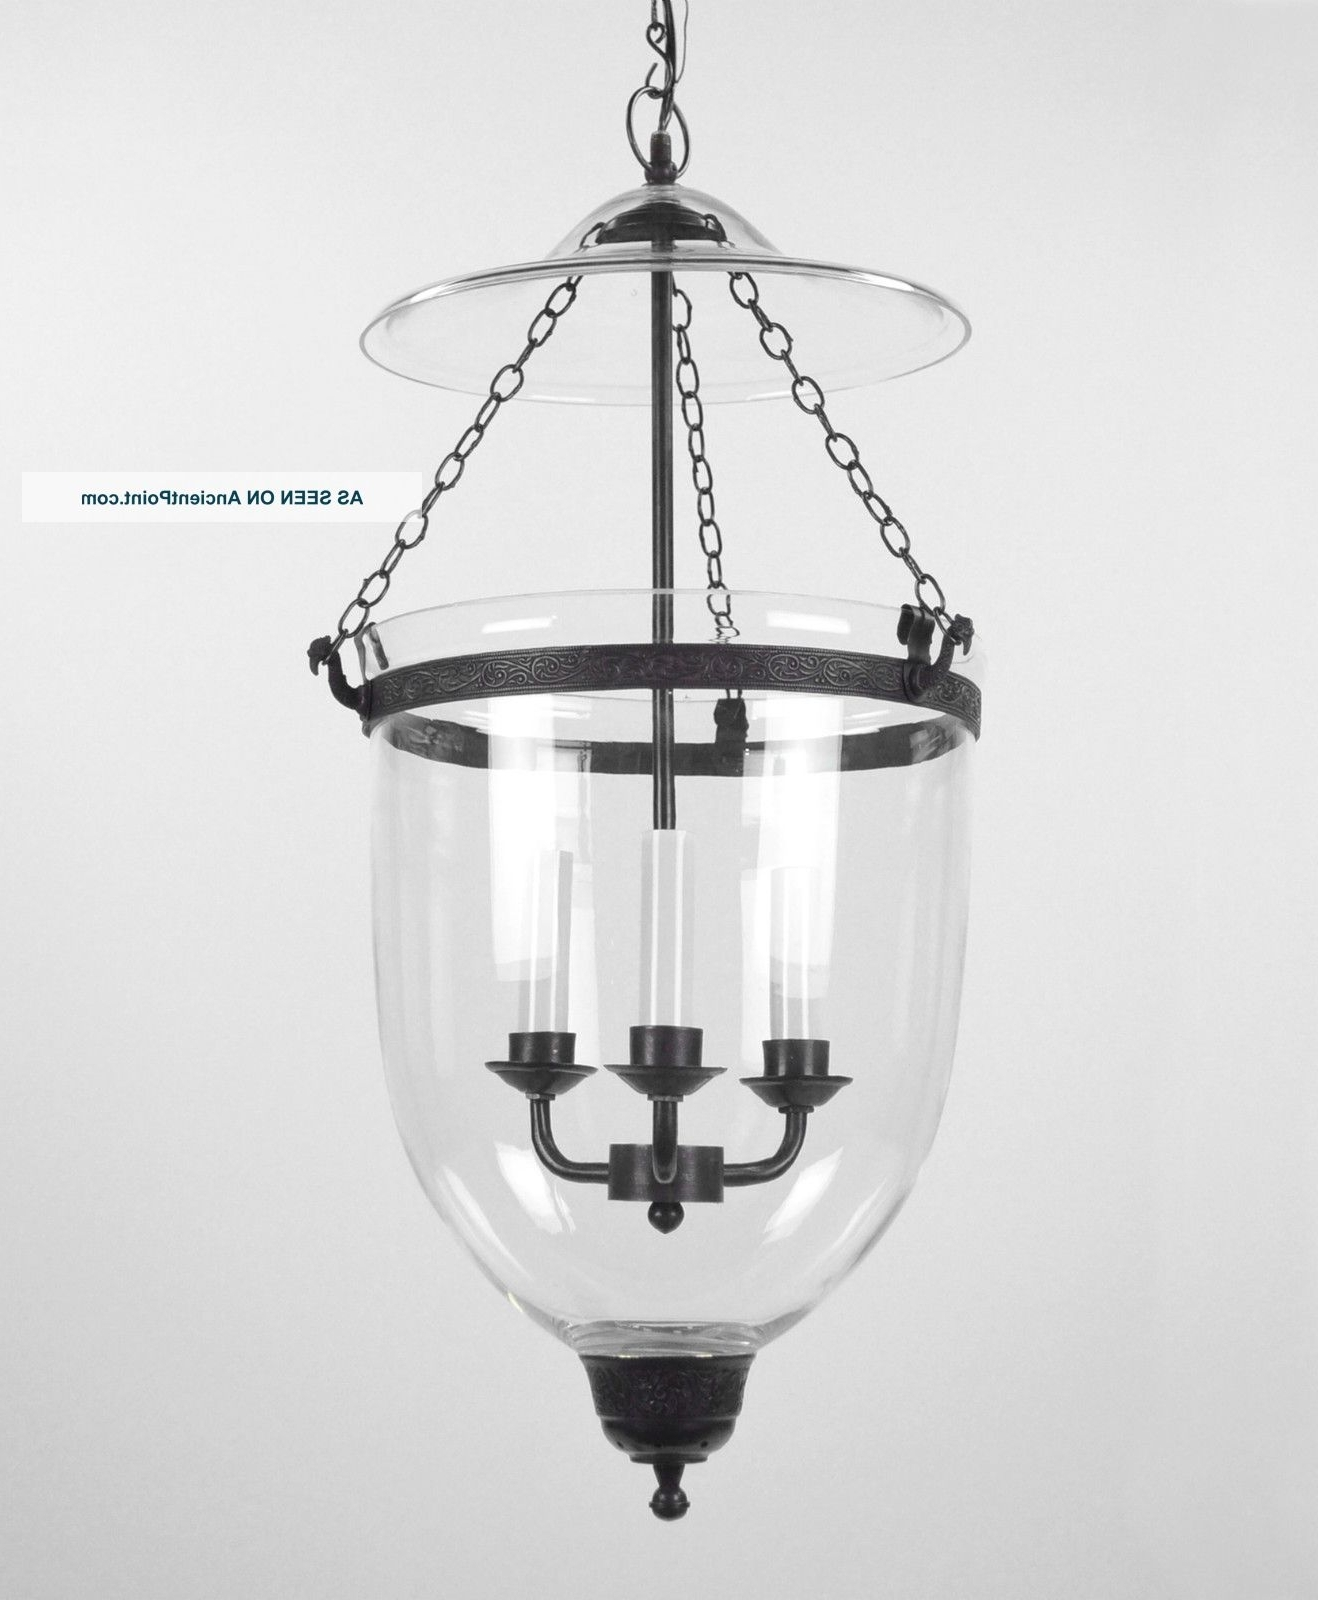 Light : Ceiling Lantern Pendant Lighting Chandelier Indoor Light Pertaining To Most Recently Released Indoor Lantern Chandelier (View 5 of 15)